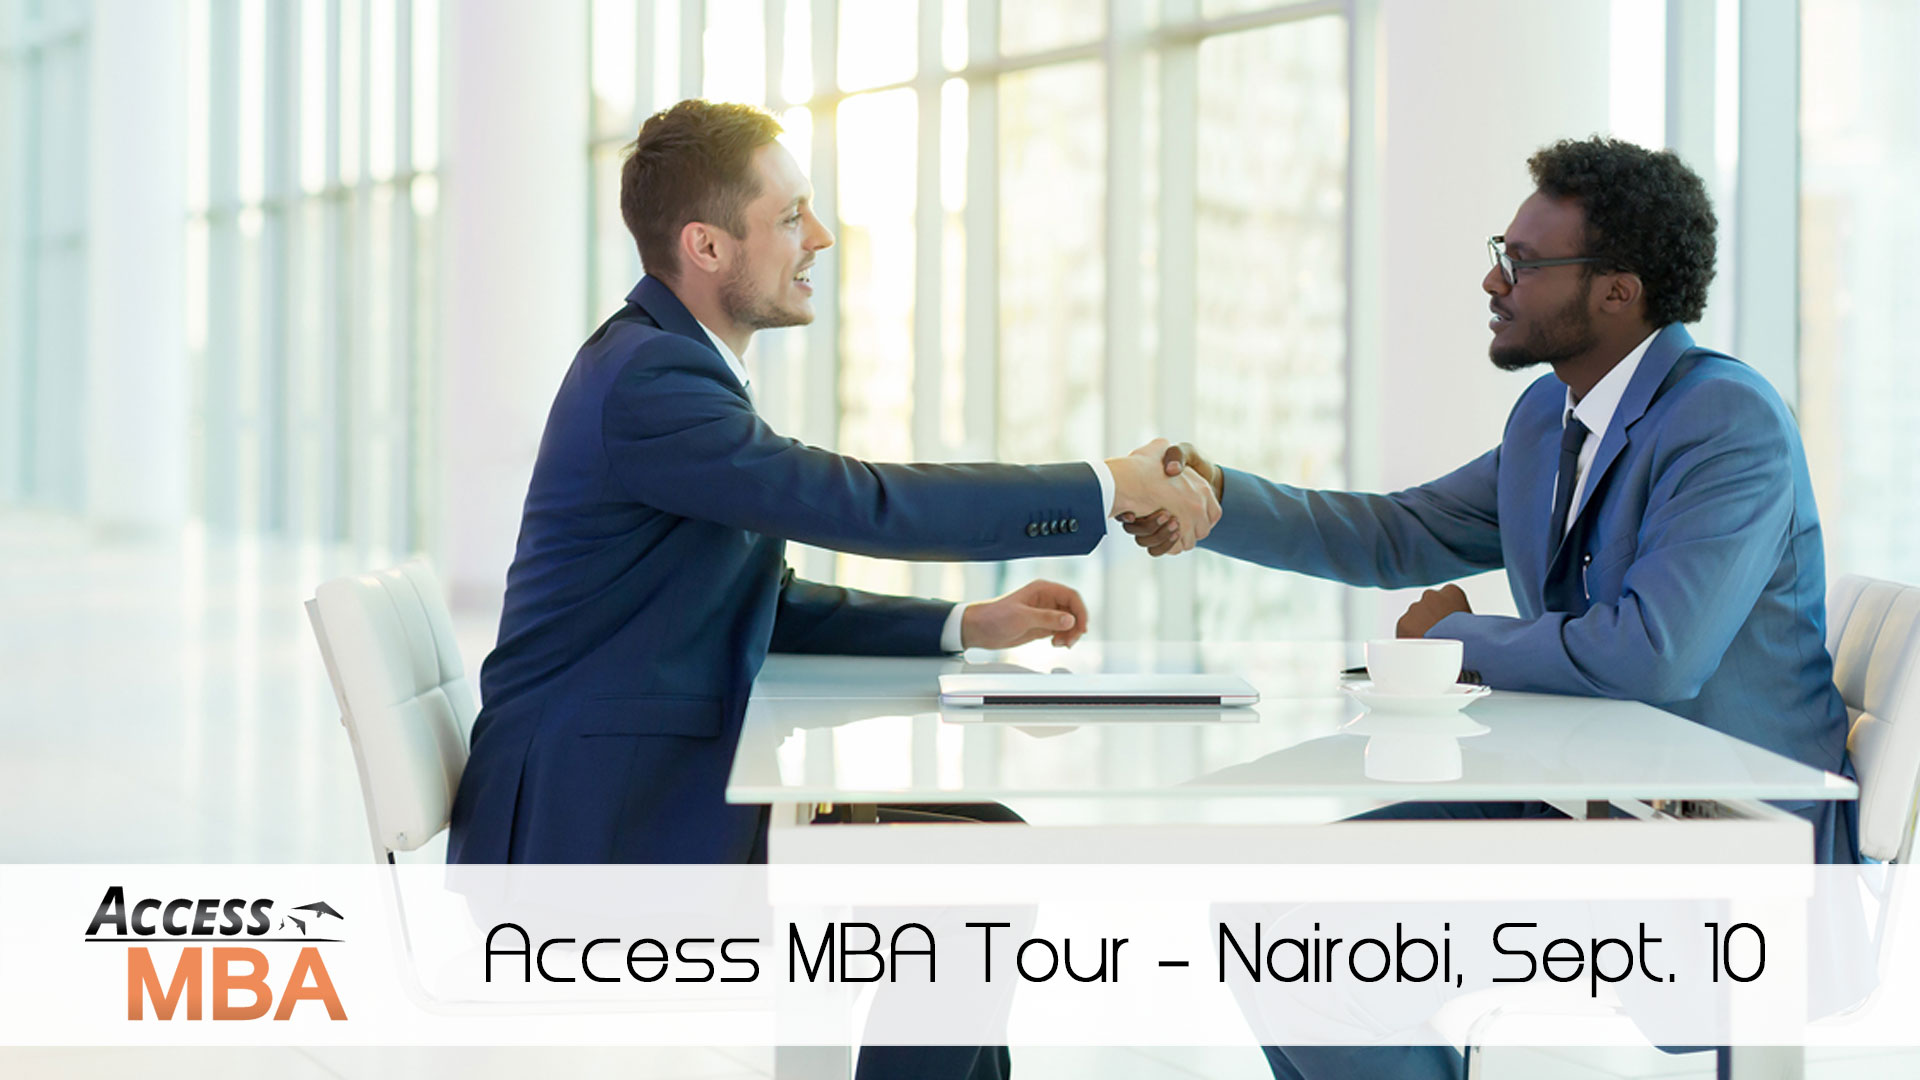 Top MBA event in Nairobi on 10th September